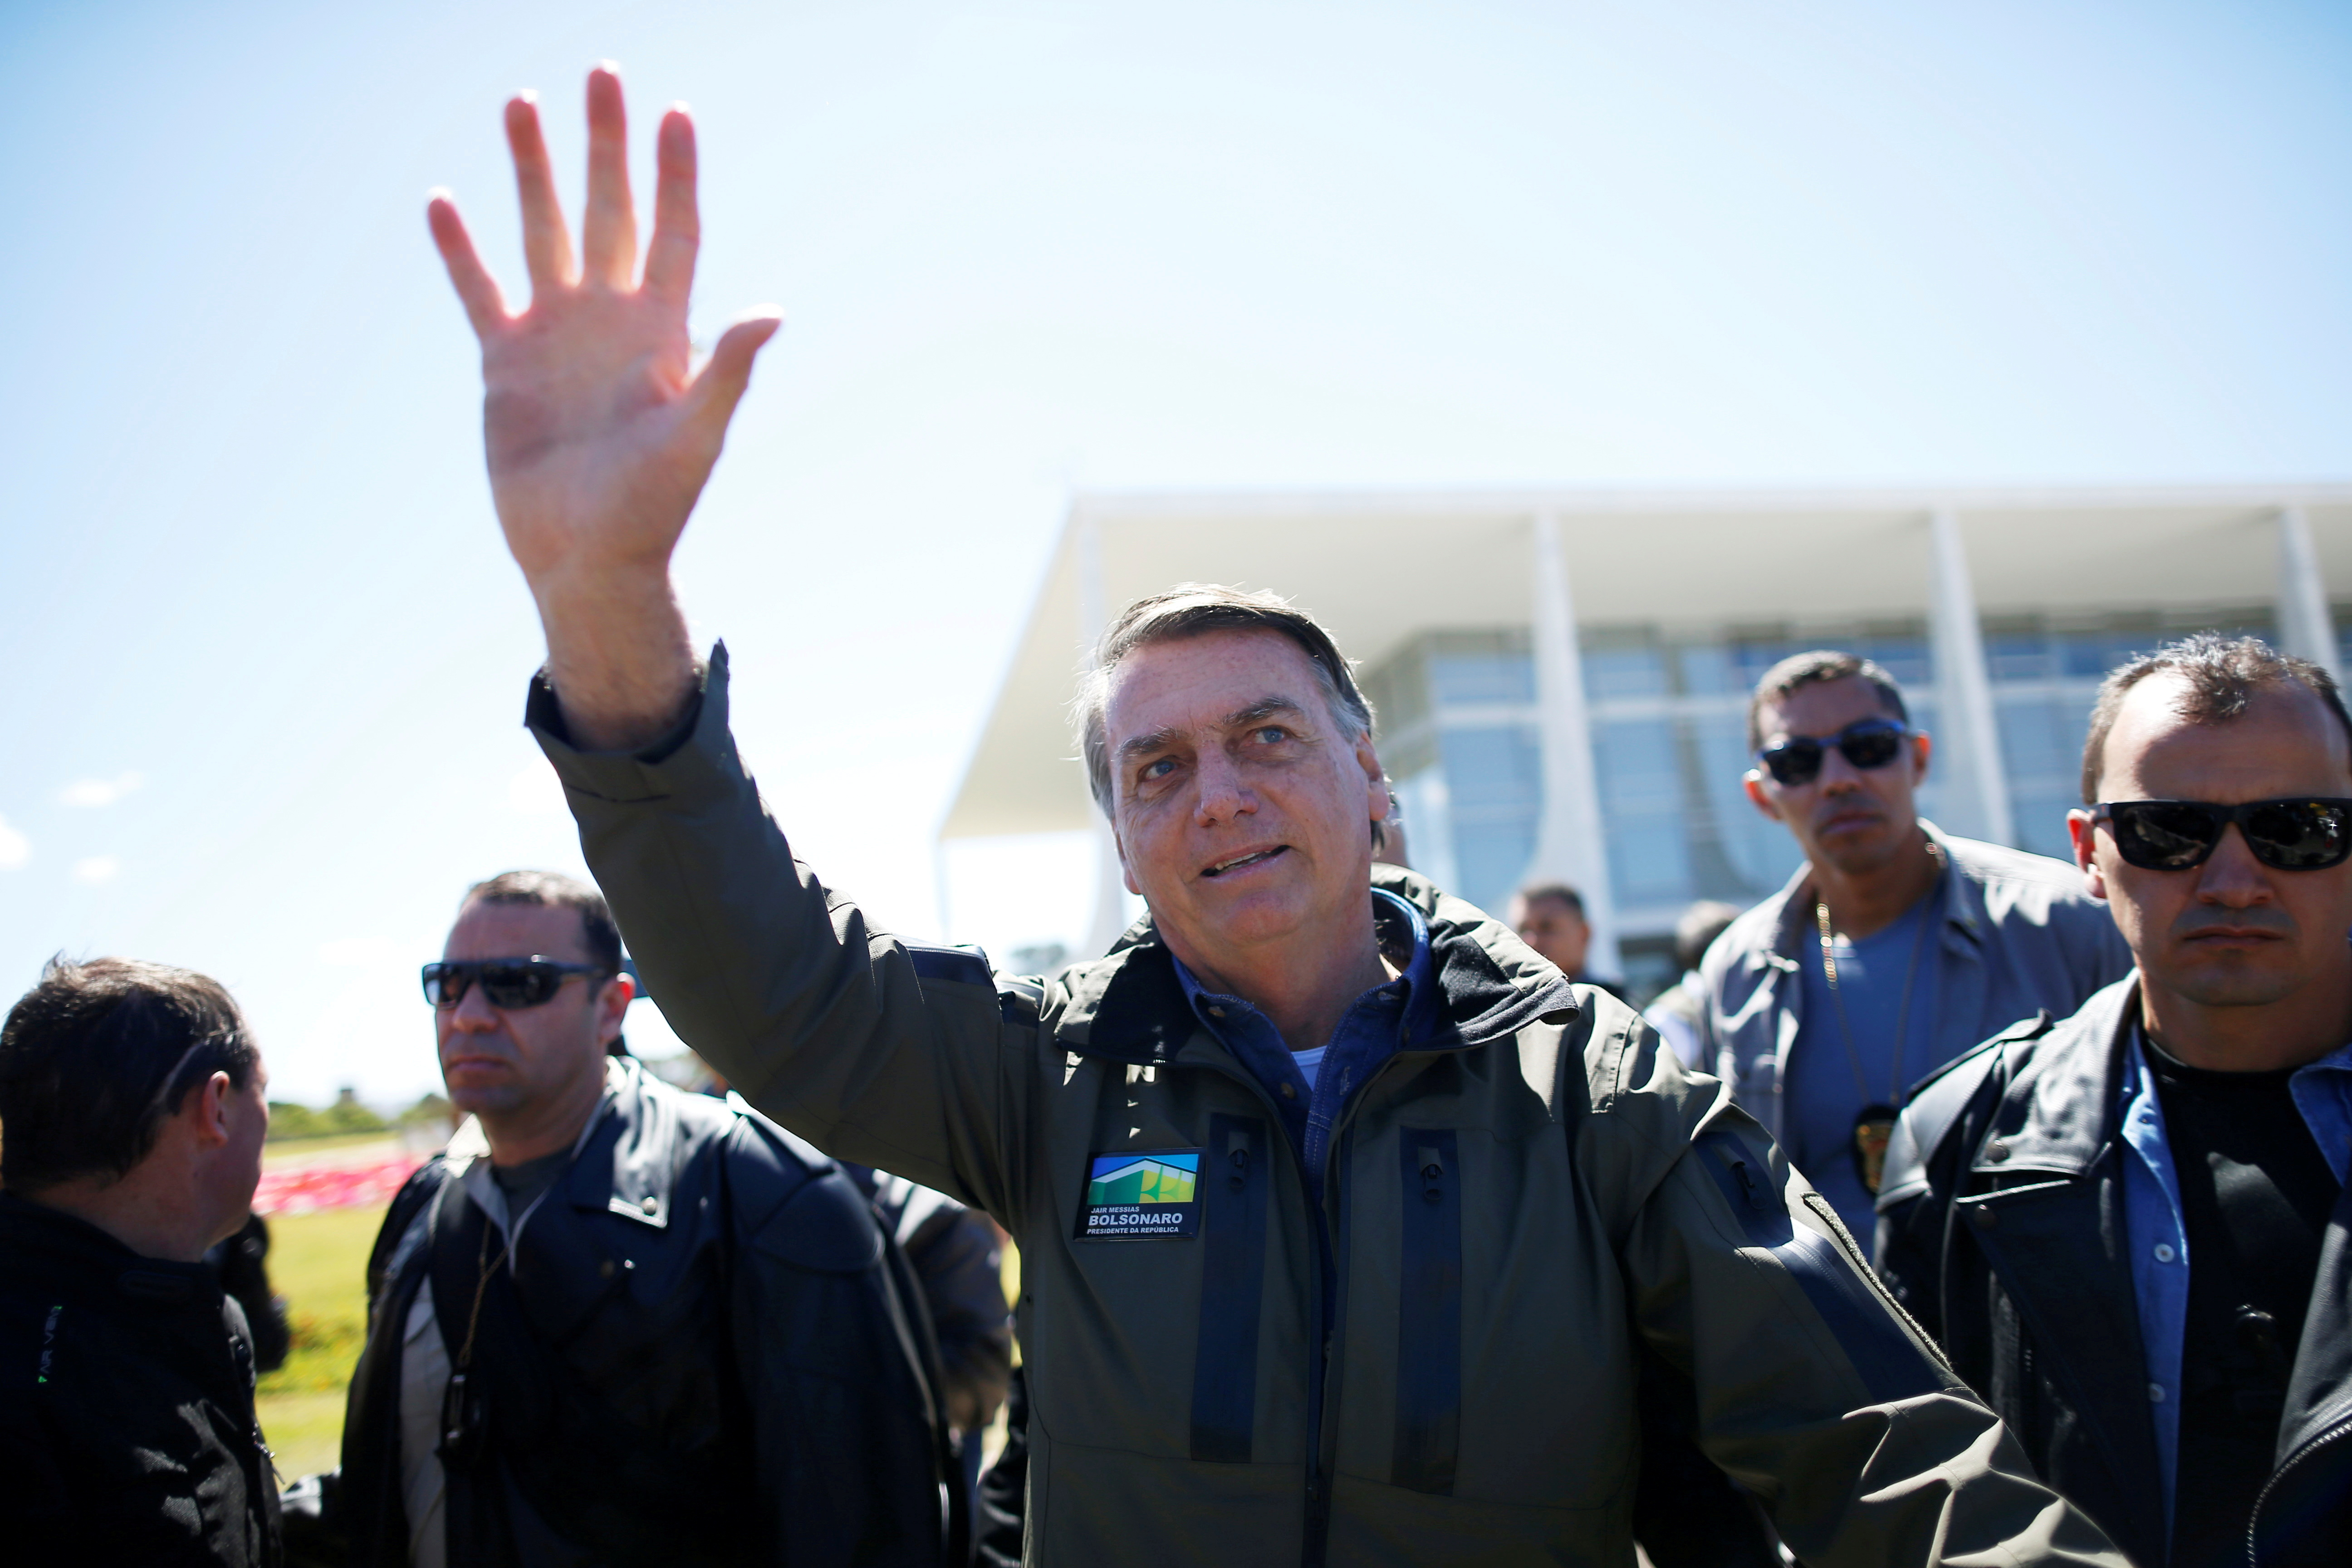 Brazil's President Jair Bolsonaro gestures after a ride on a motorbike in a motorcade rally with his supporters amid the coronavirus disease (COVID-19) pandemic, in Brasilia, Brazil, August 8, 2021. REUTERS/Adriano Machado/File Photo